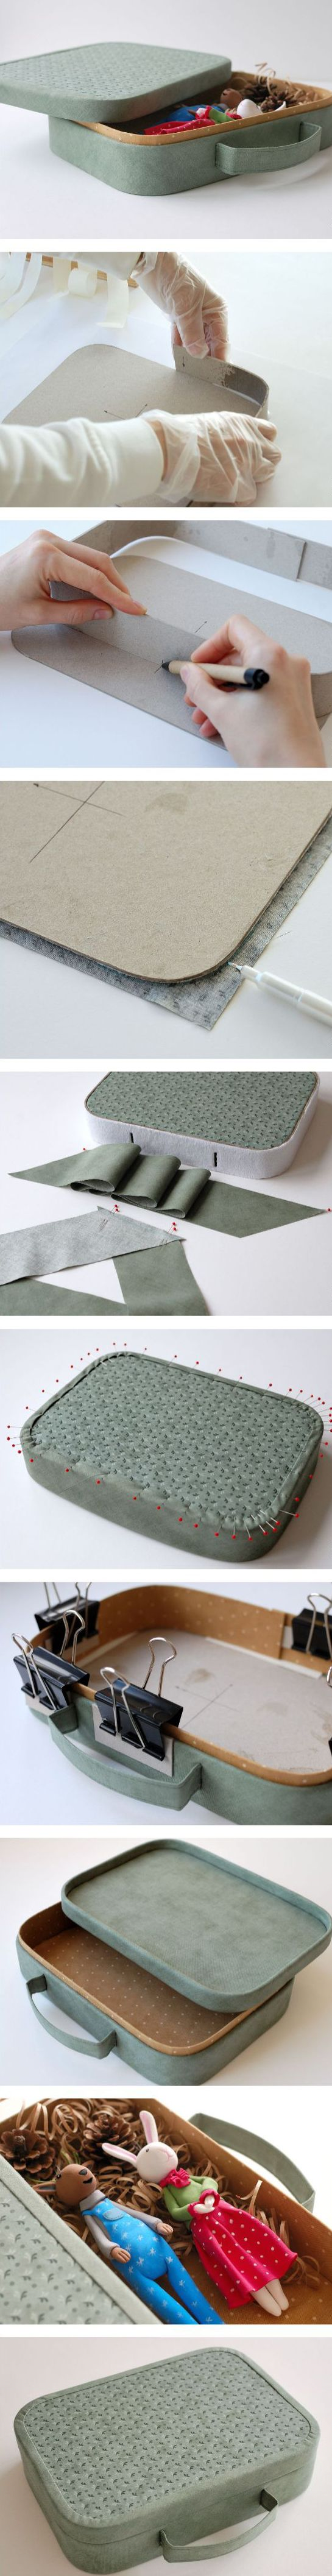 DIY gift suitcase for dolls and toys storage. Click on image to see step-by-step tutorial